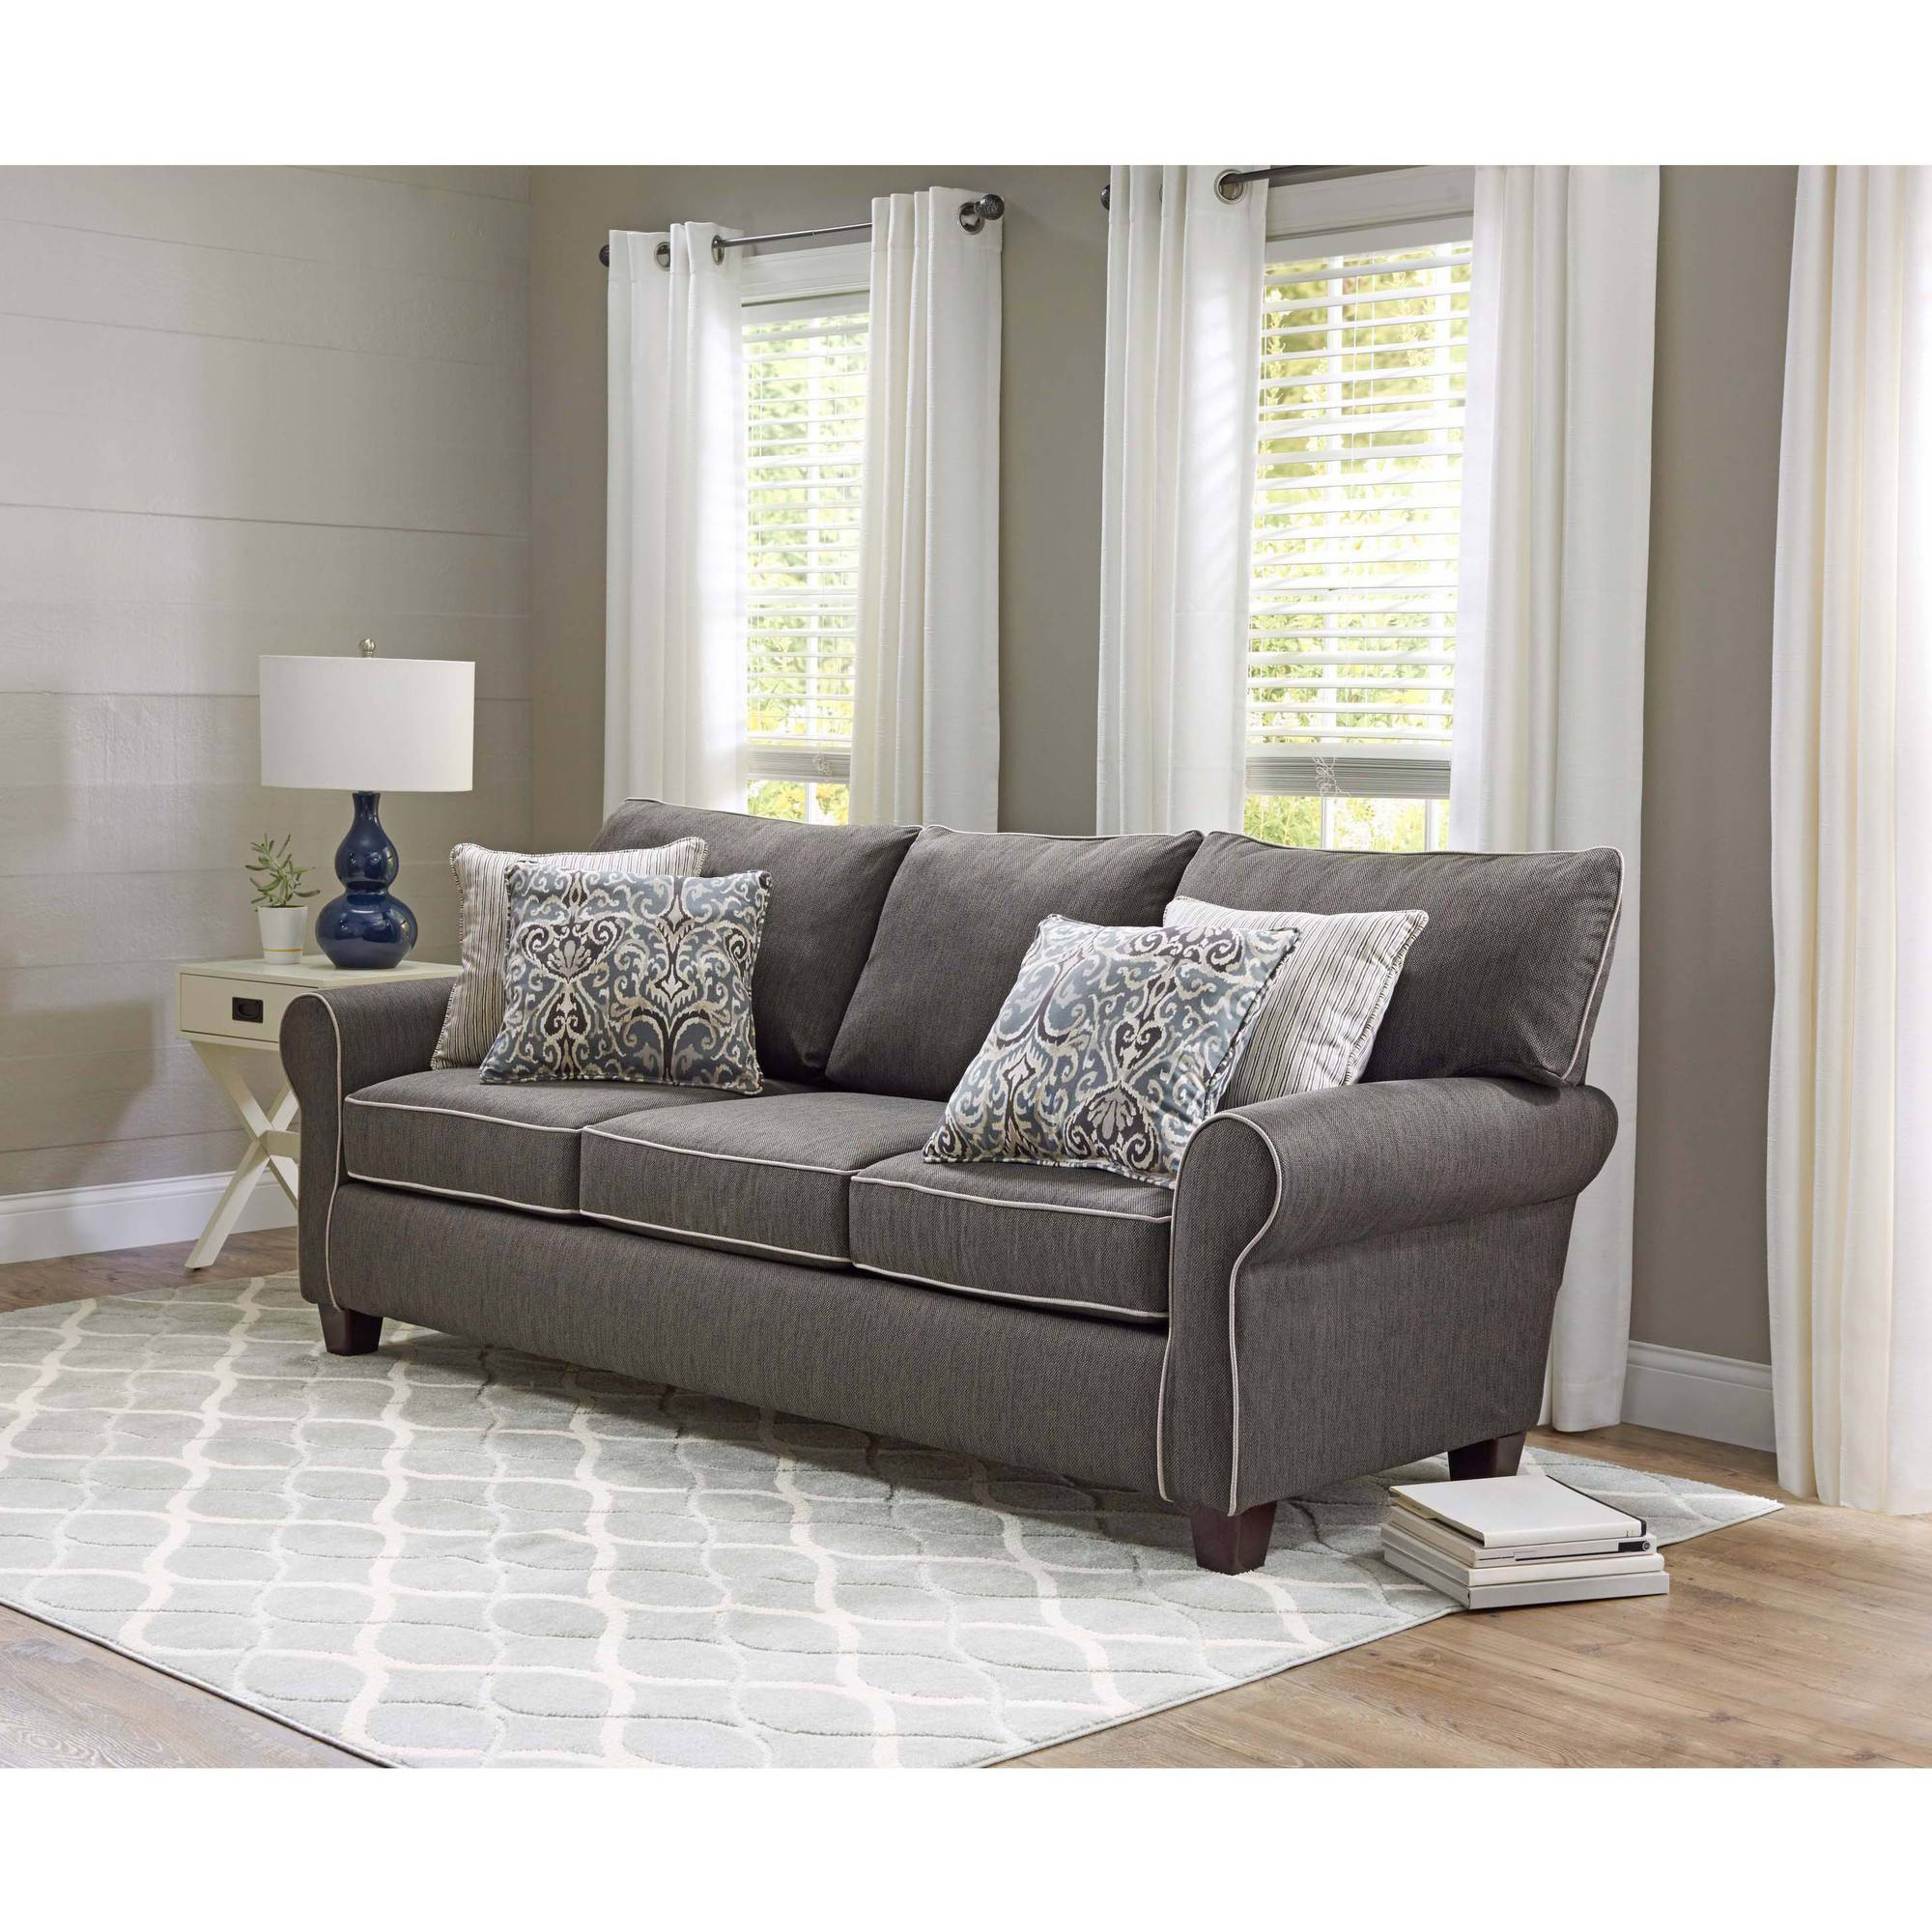 Futon Living Room Ideas New Futon Living Room Set Home Design Ideas regarding Futon Living Room Set